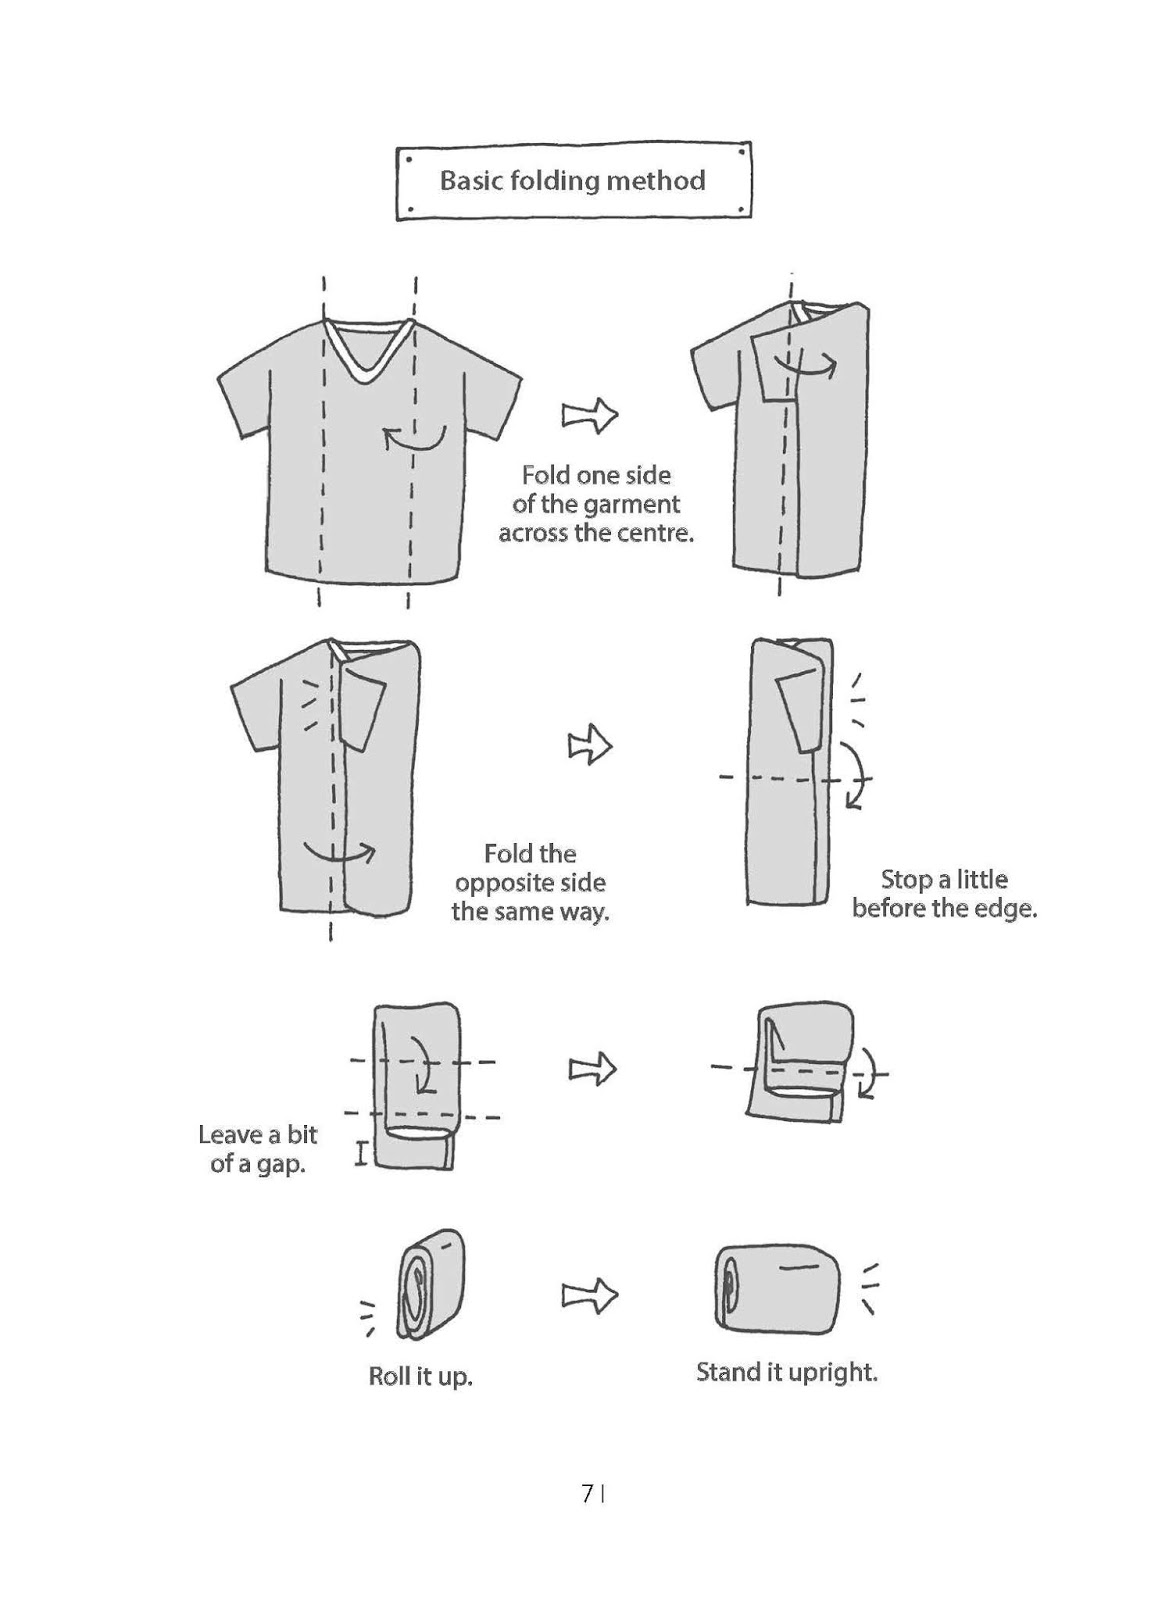 marie kondo method of folding